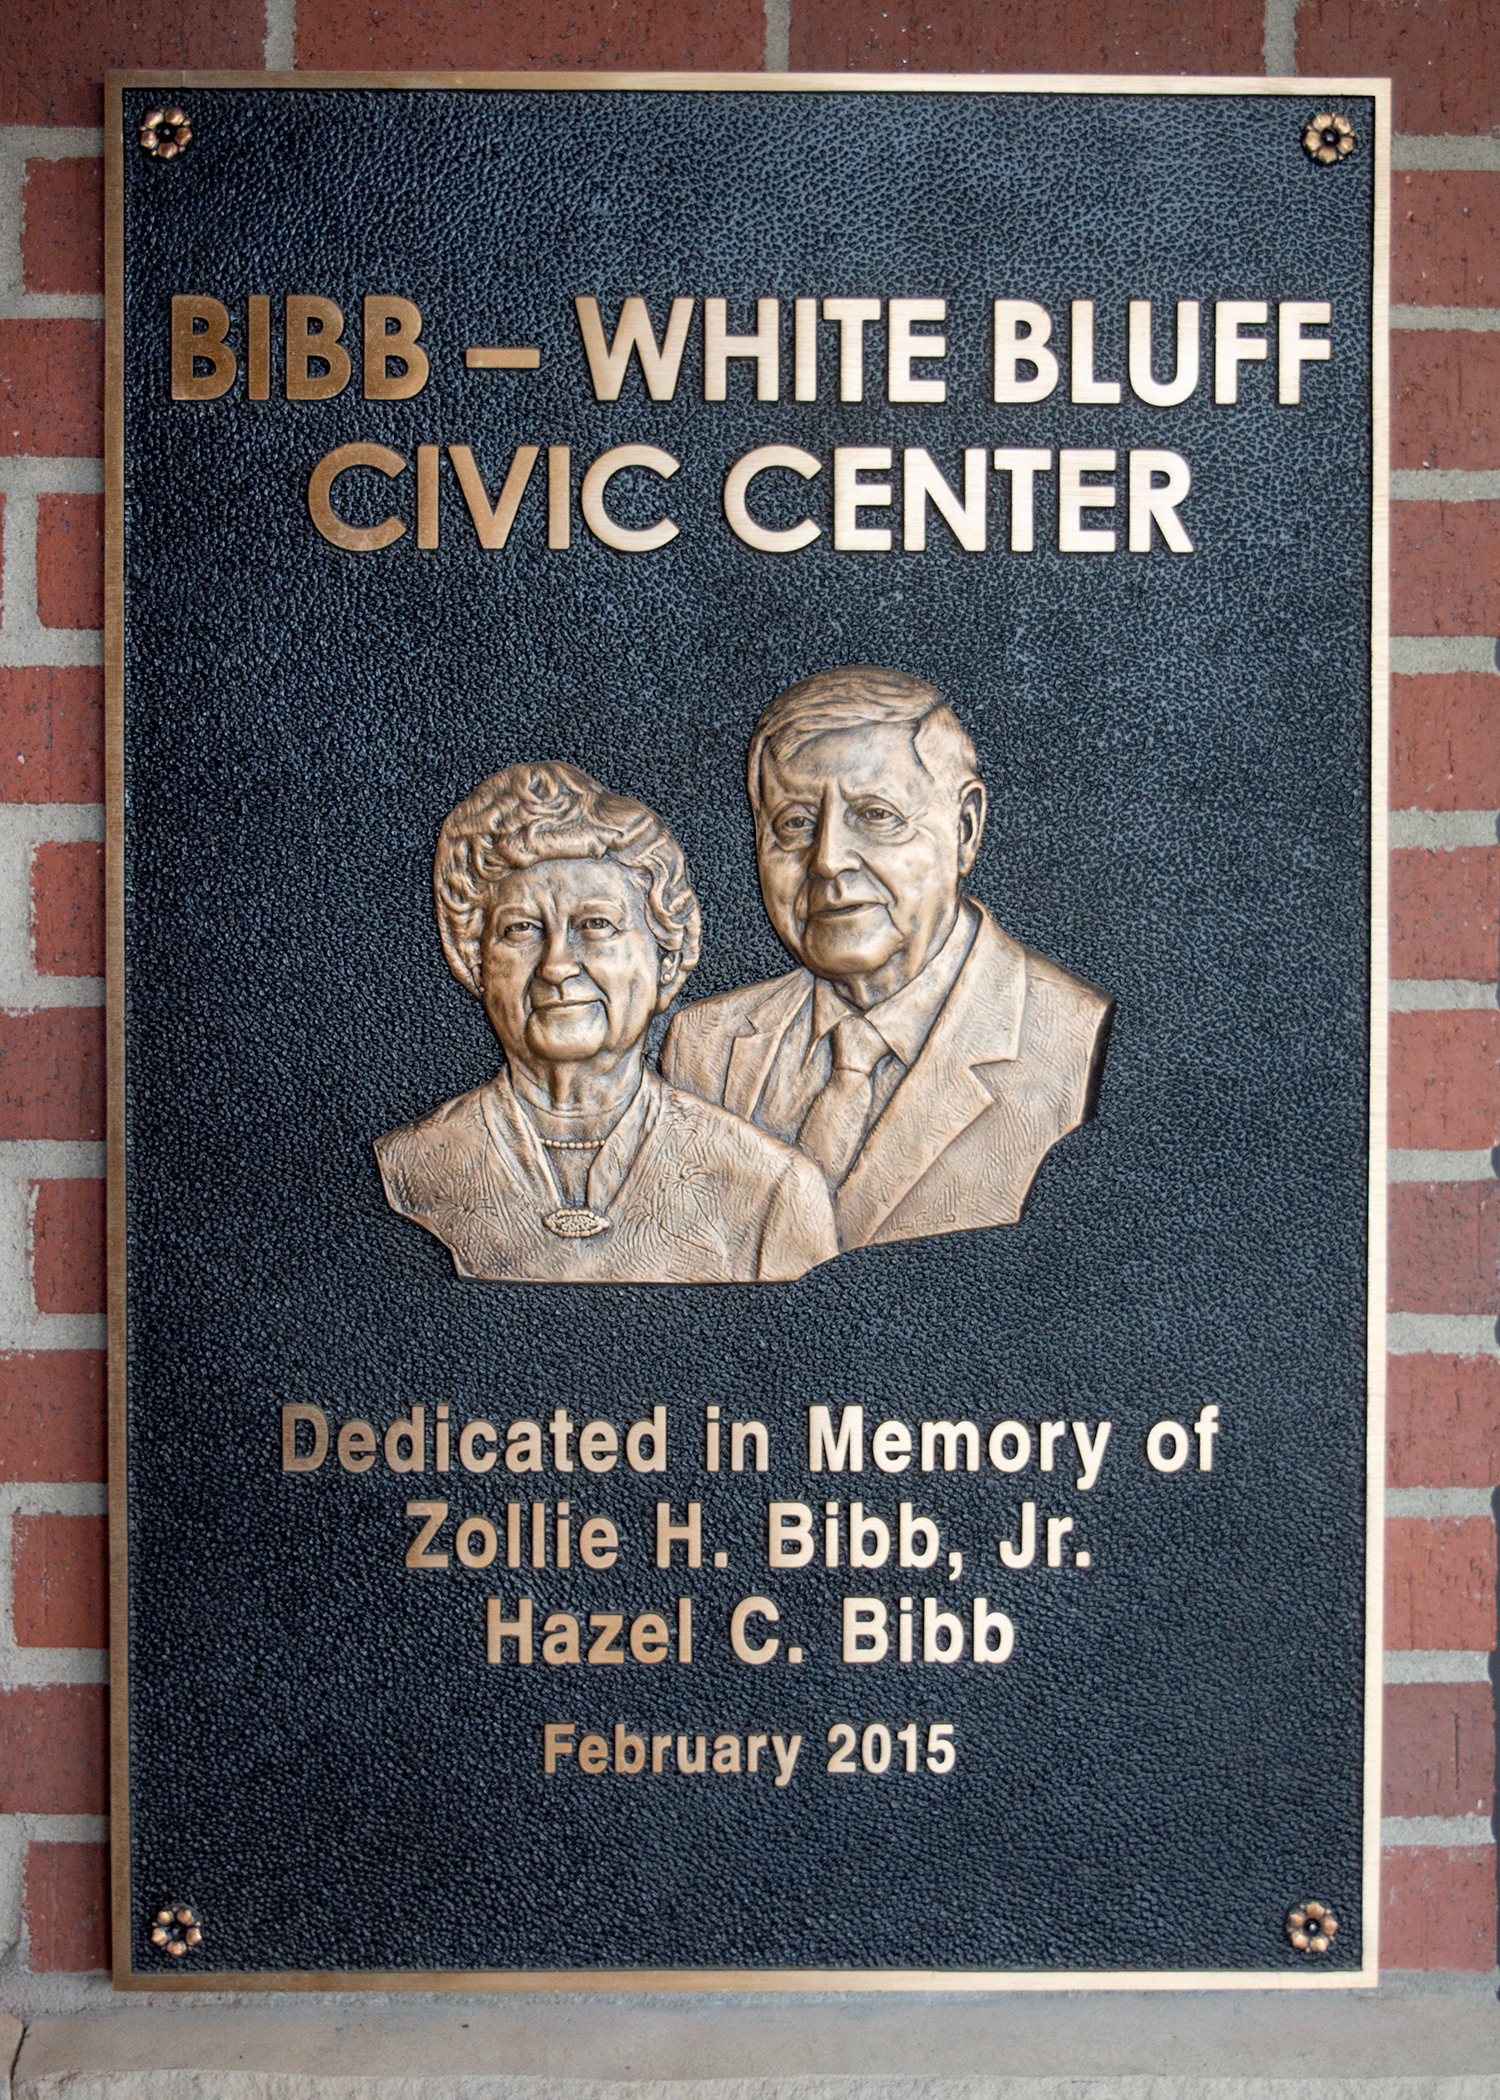 Bibb-White Bluff Civic Center 2